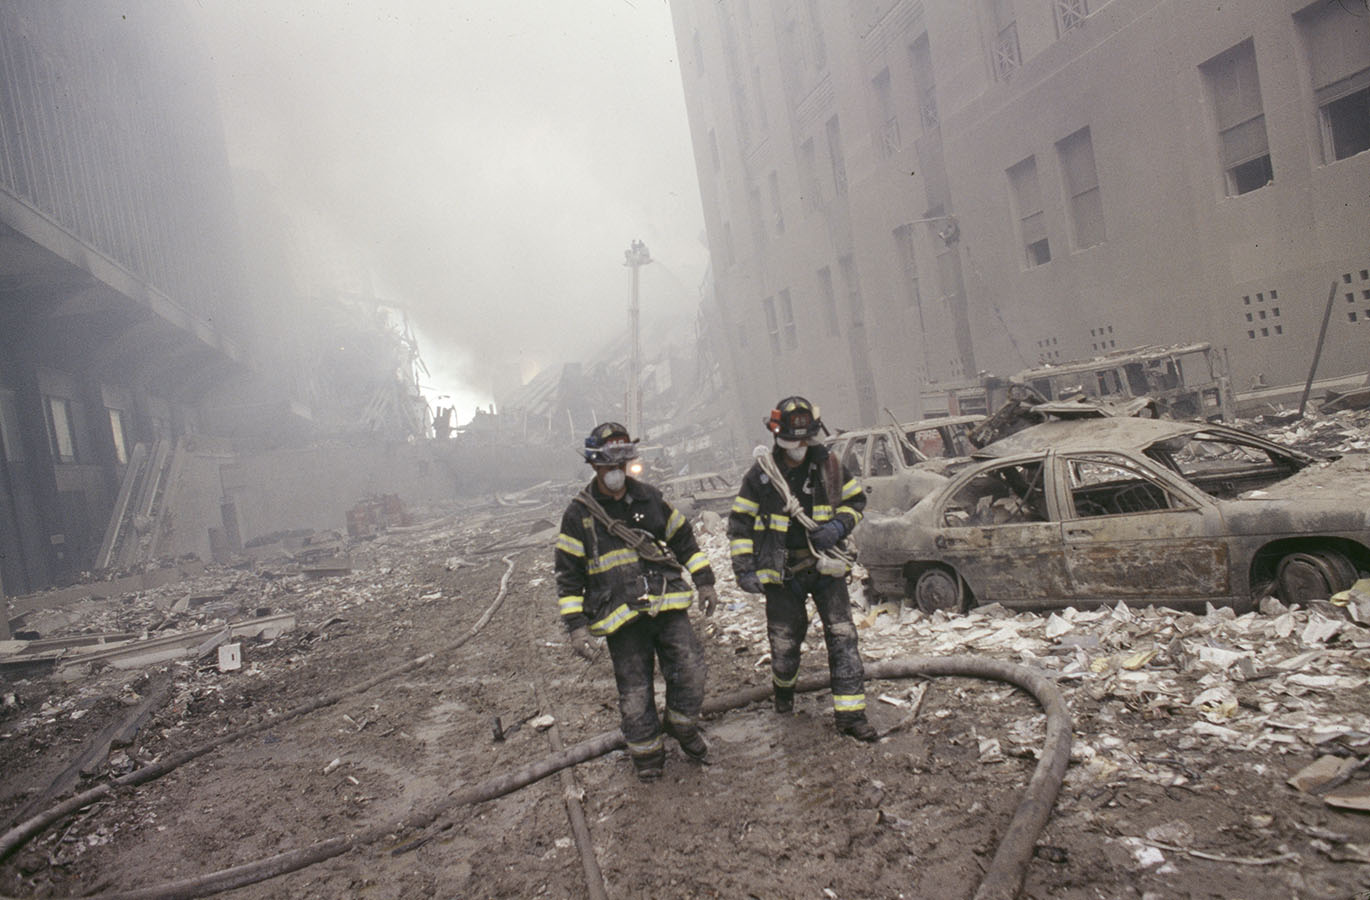 9/11, World Trade Center Disaster. NYC Firemen walking at Ground Zero during the aftermath of the September 11, 2001 attack of the World Trade Center in New York City, September 2001. Stephen Shames Photographic Archive. e_shames_0148